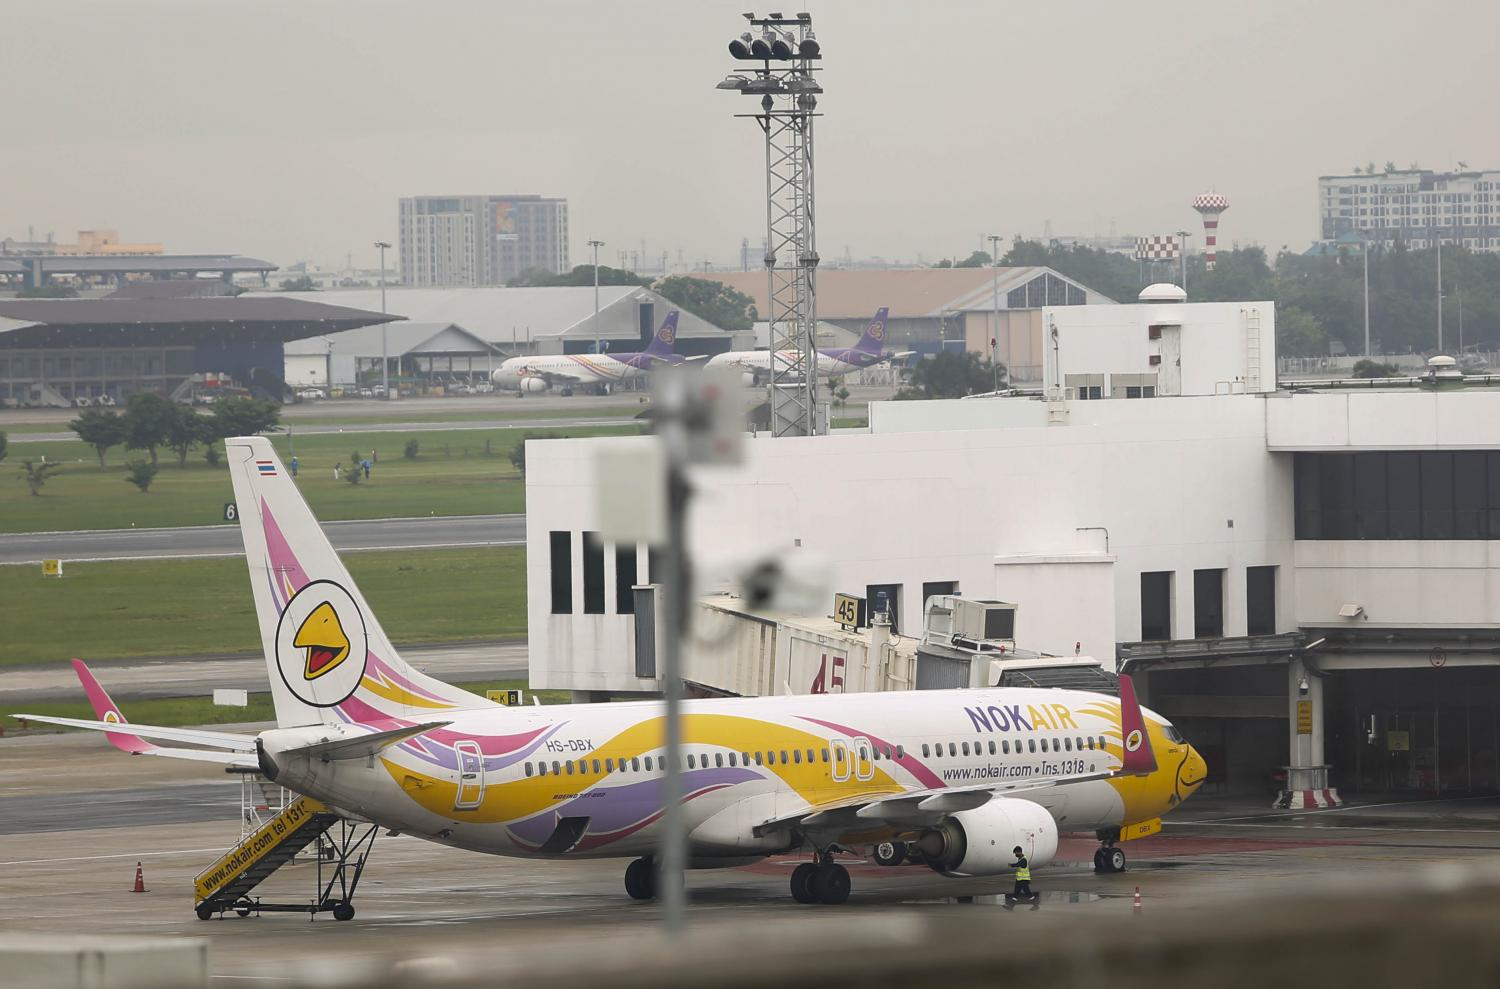 An aircraft of Nok Air is parked at Don Mueang Airport during the outbreak of Covid-19. Pattarapong Chatpattarasill